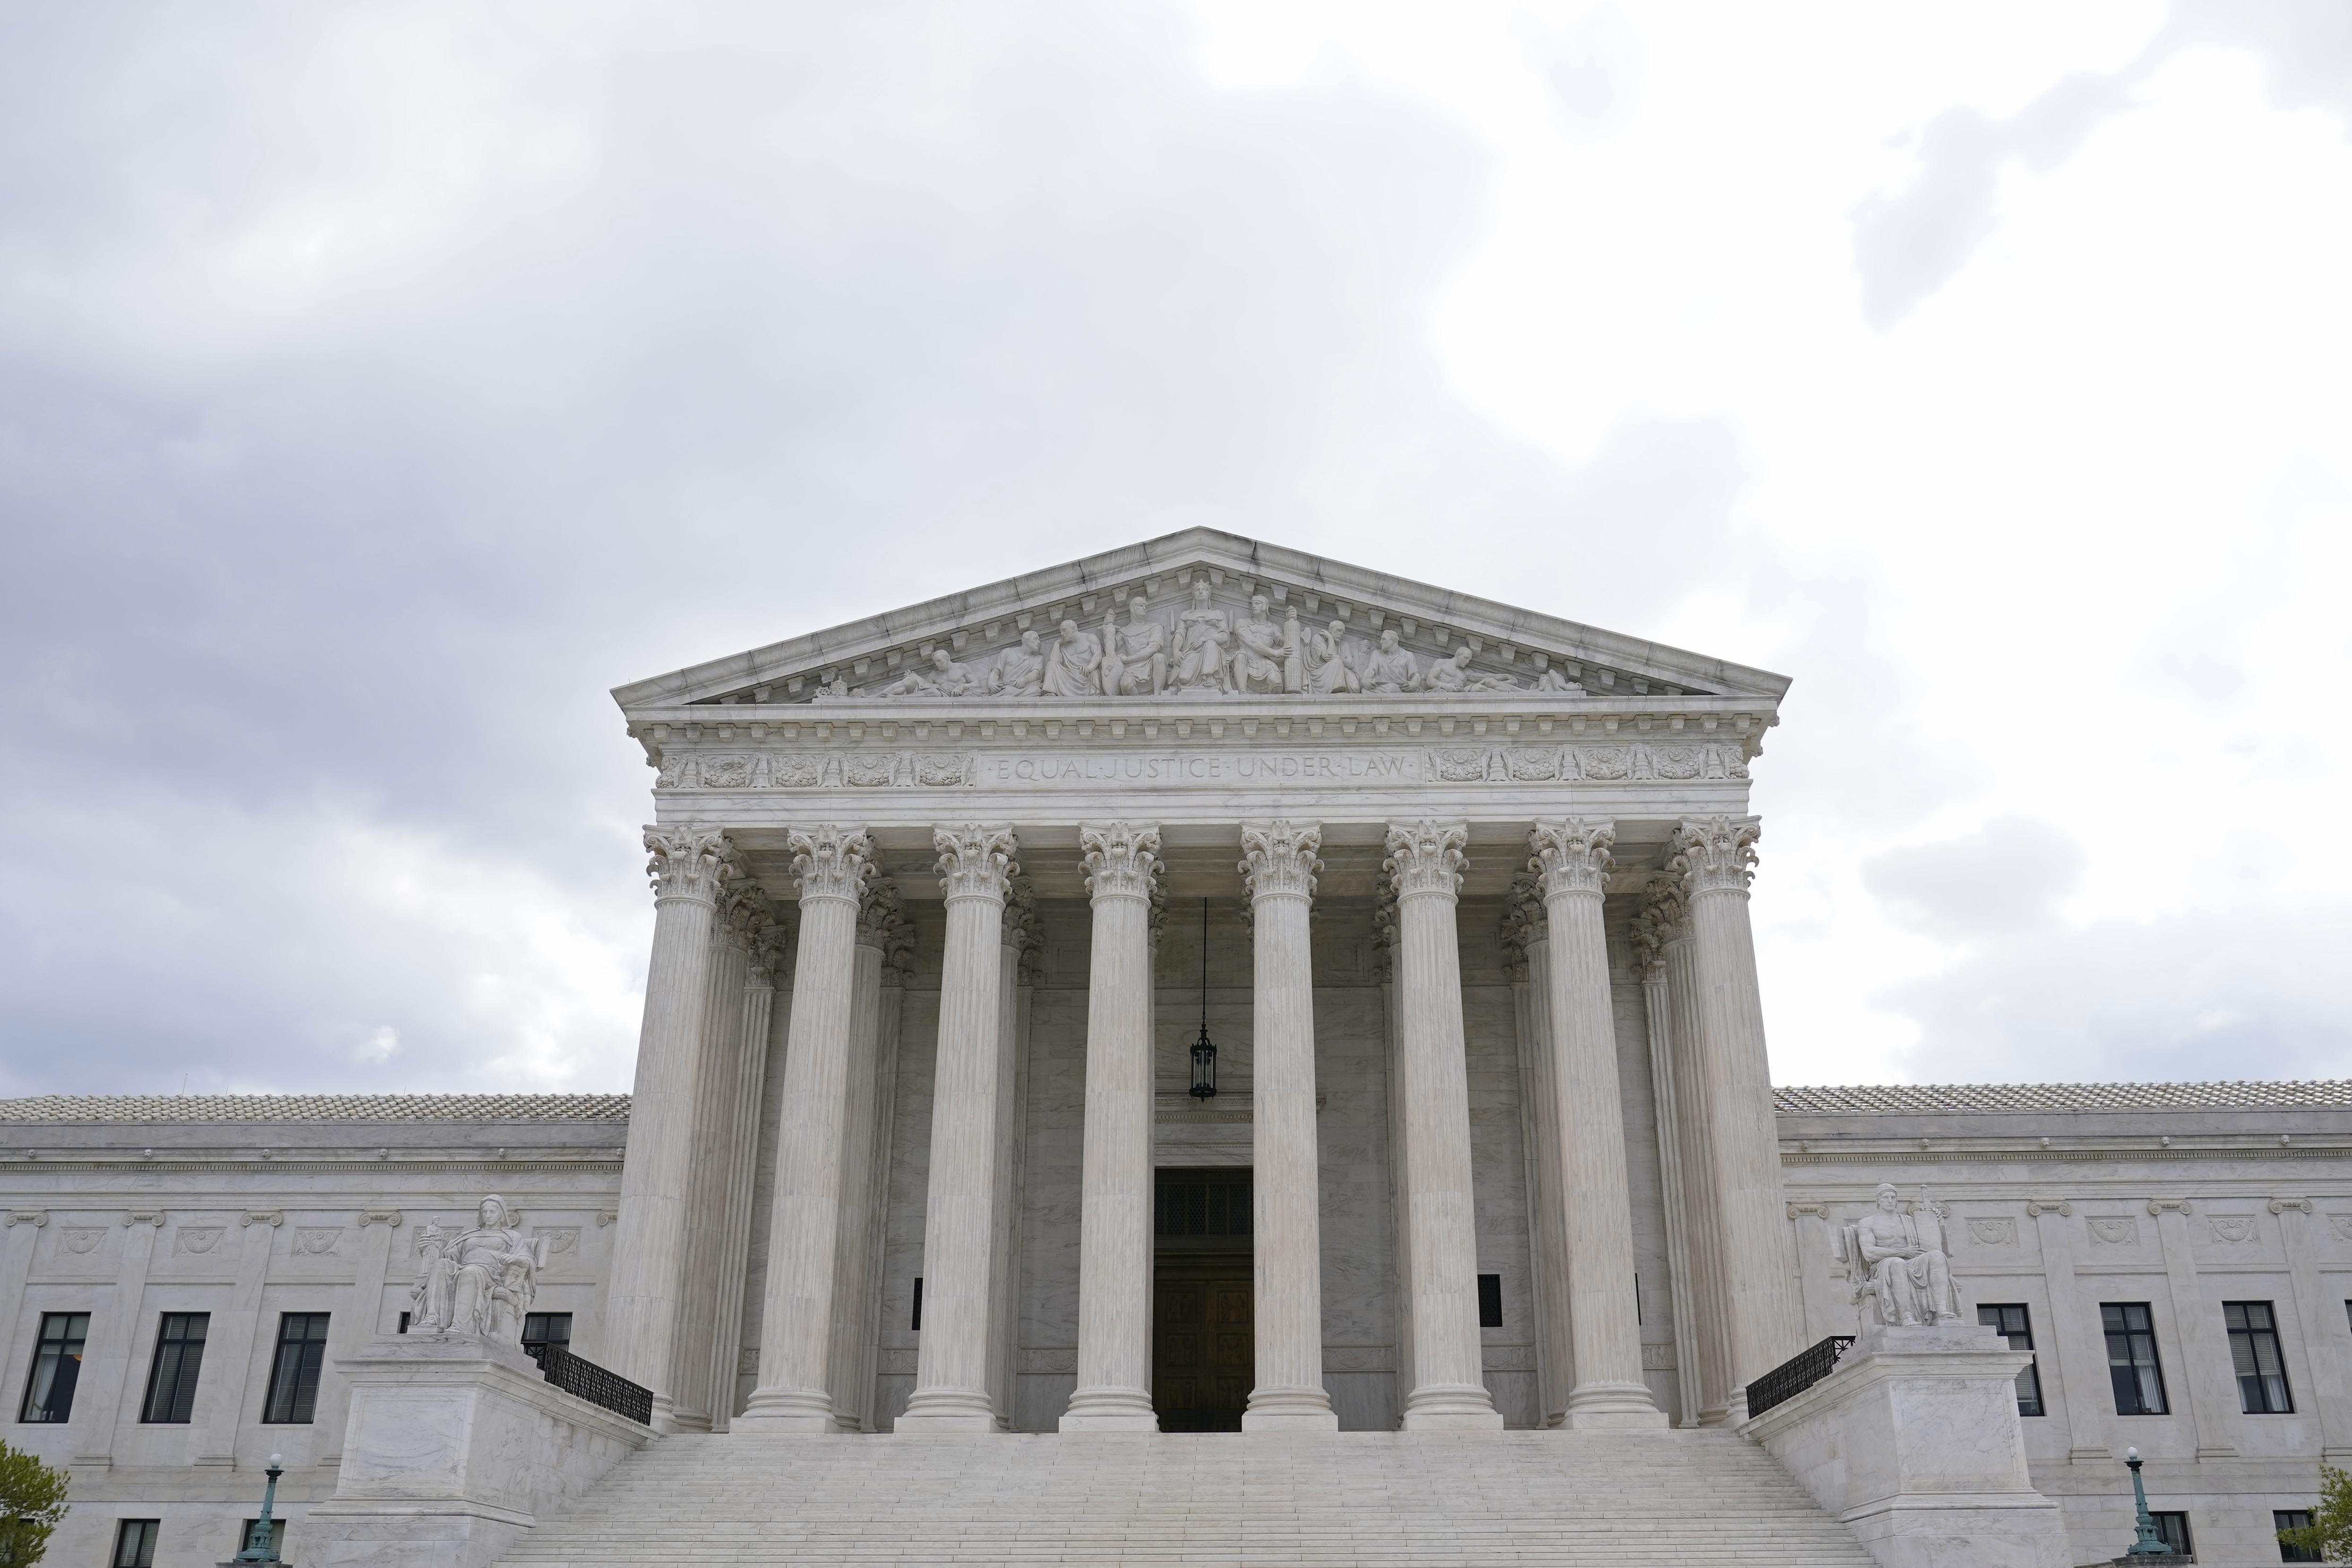 A photo of the exterior of the U.S. Supreme Court building in Washington.